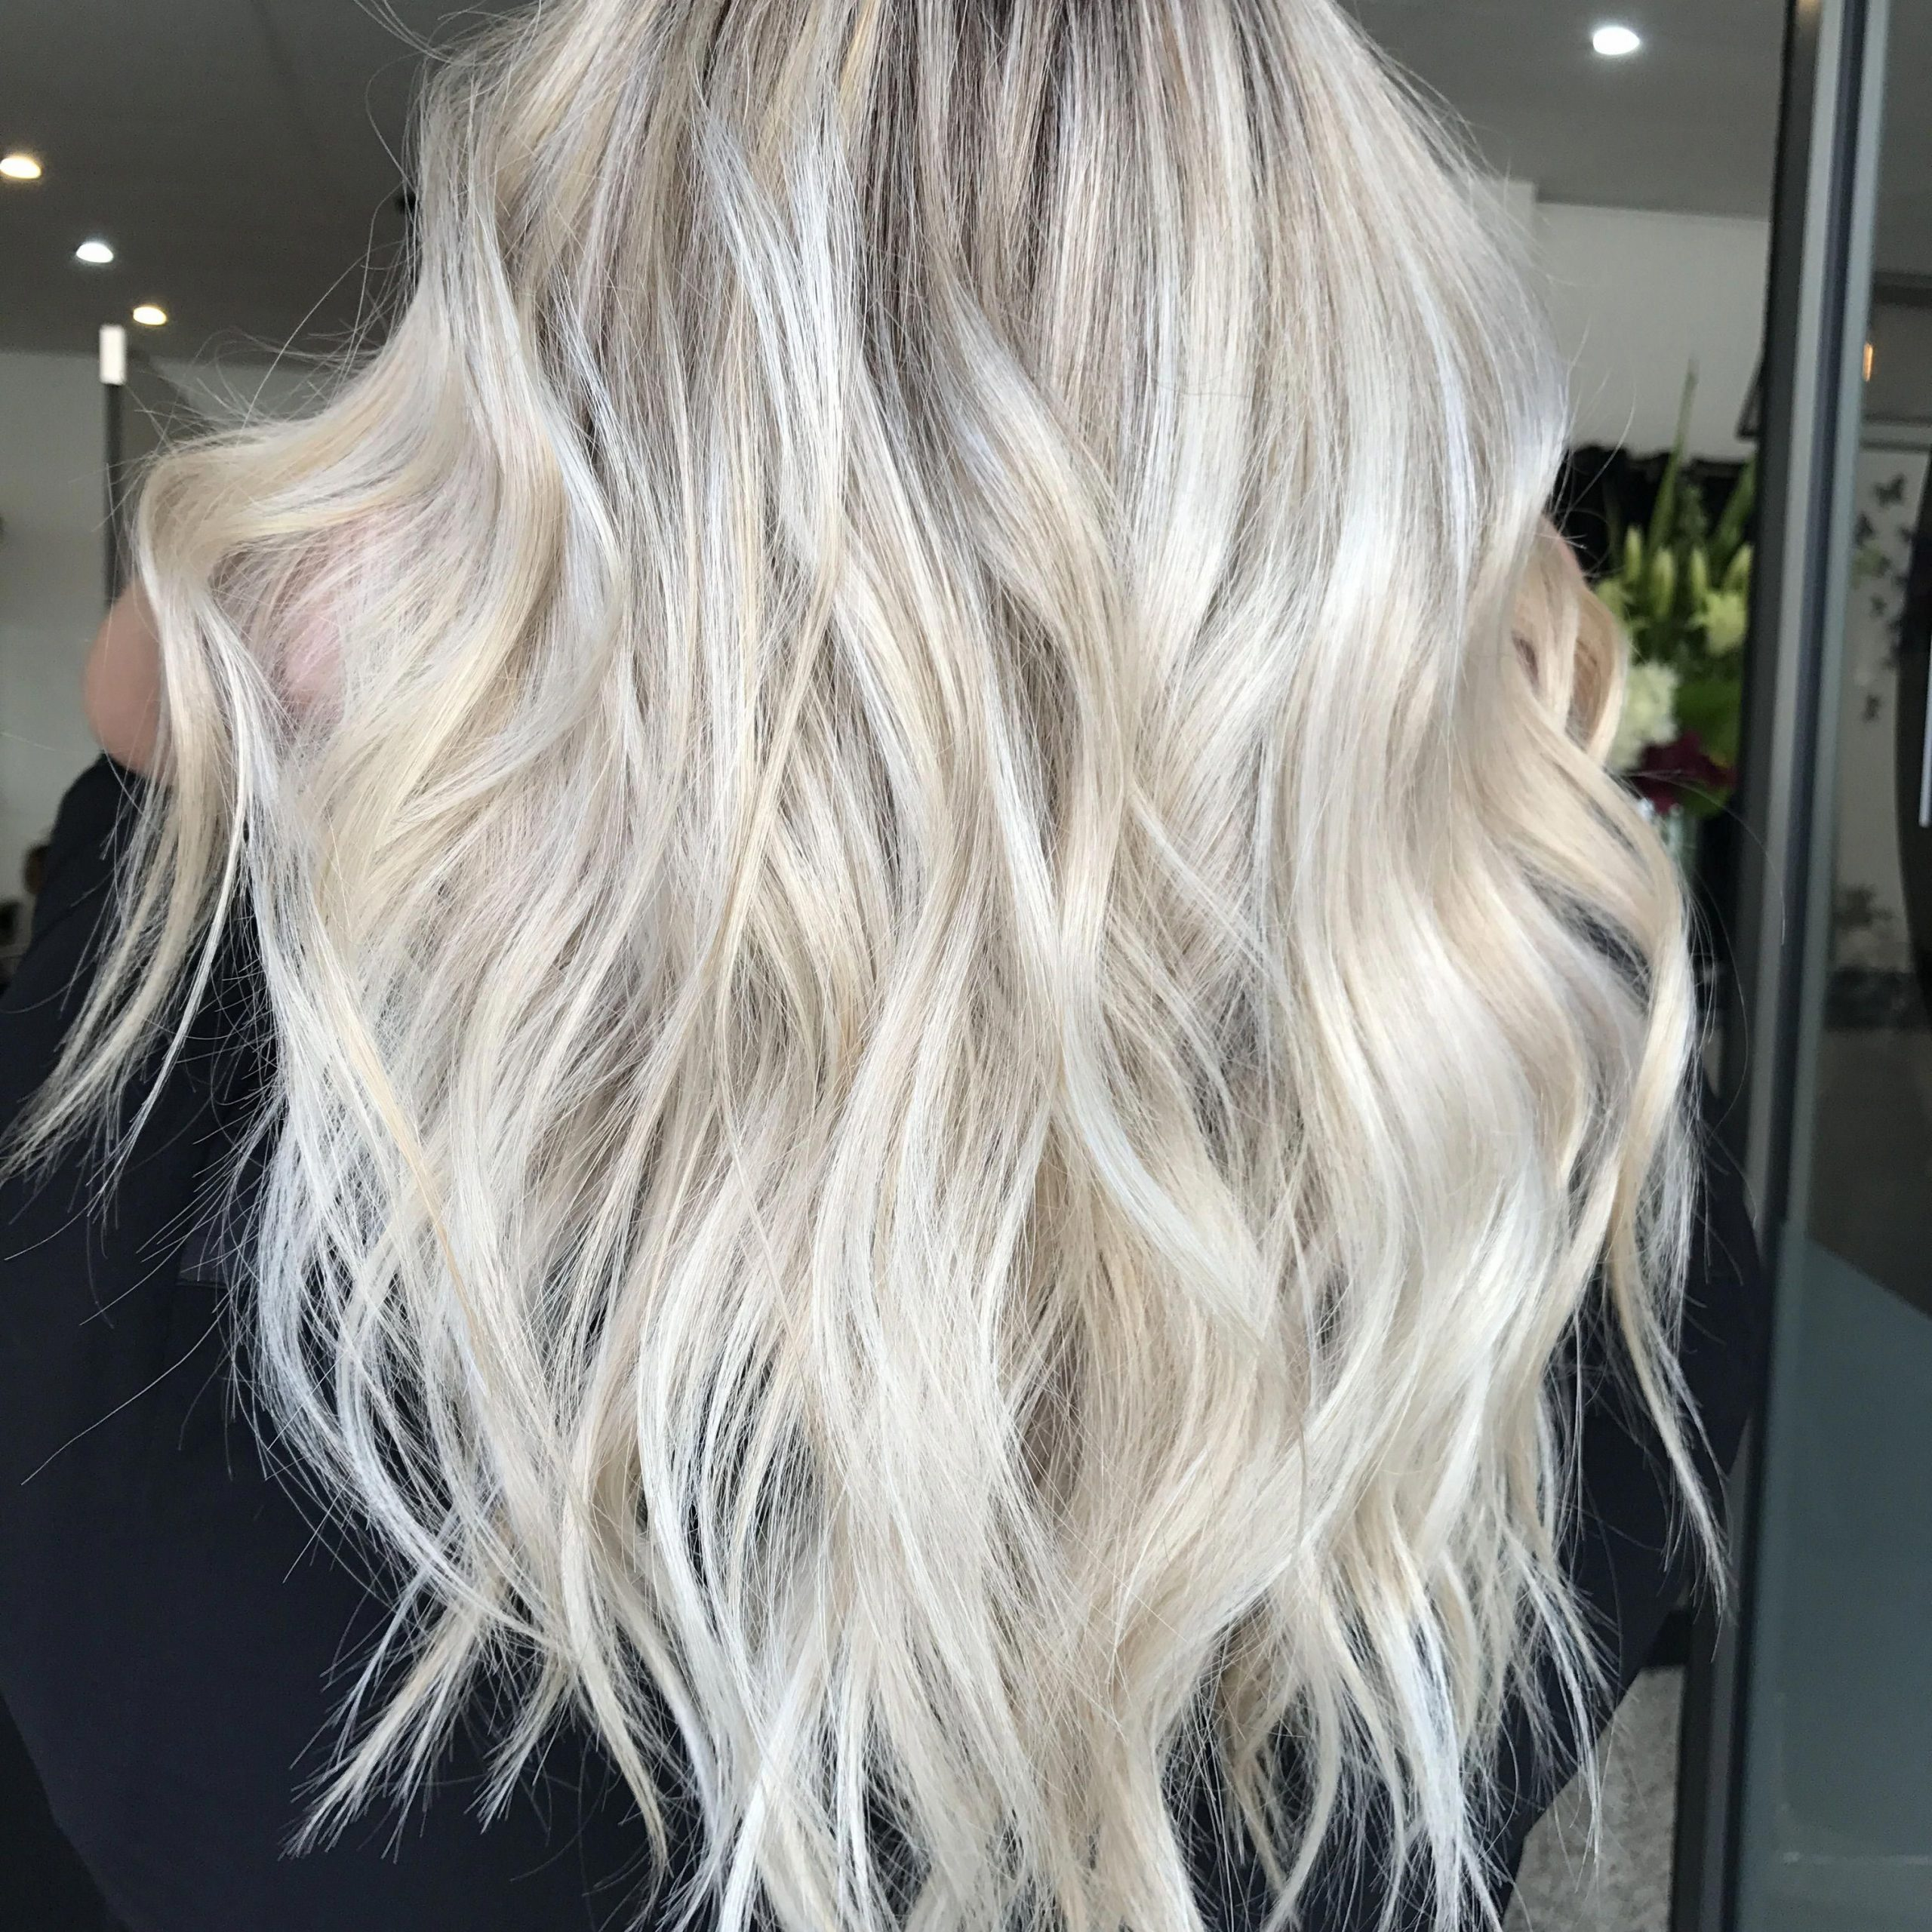 Well Known Golden Blonde Balayage On Long Curls Hairstyles In Instagram @kaitlinjadehairartistry Blonde Balayage, Long (View 16 of 20)